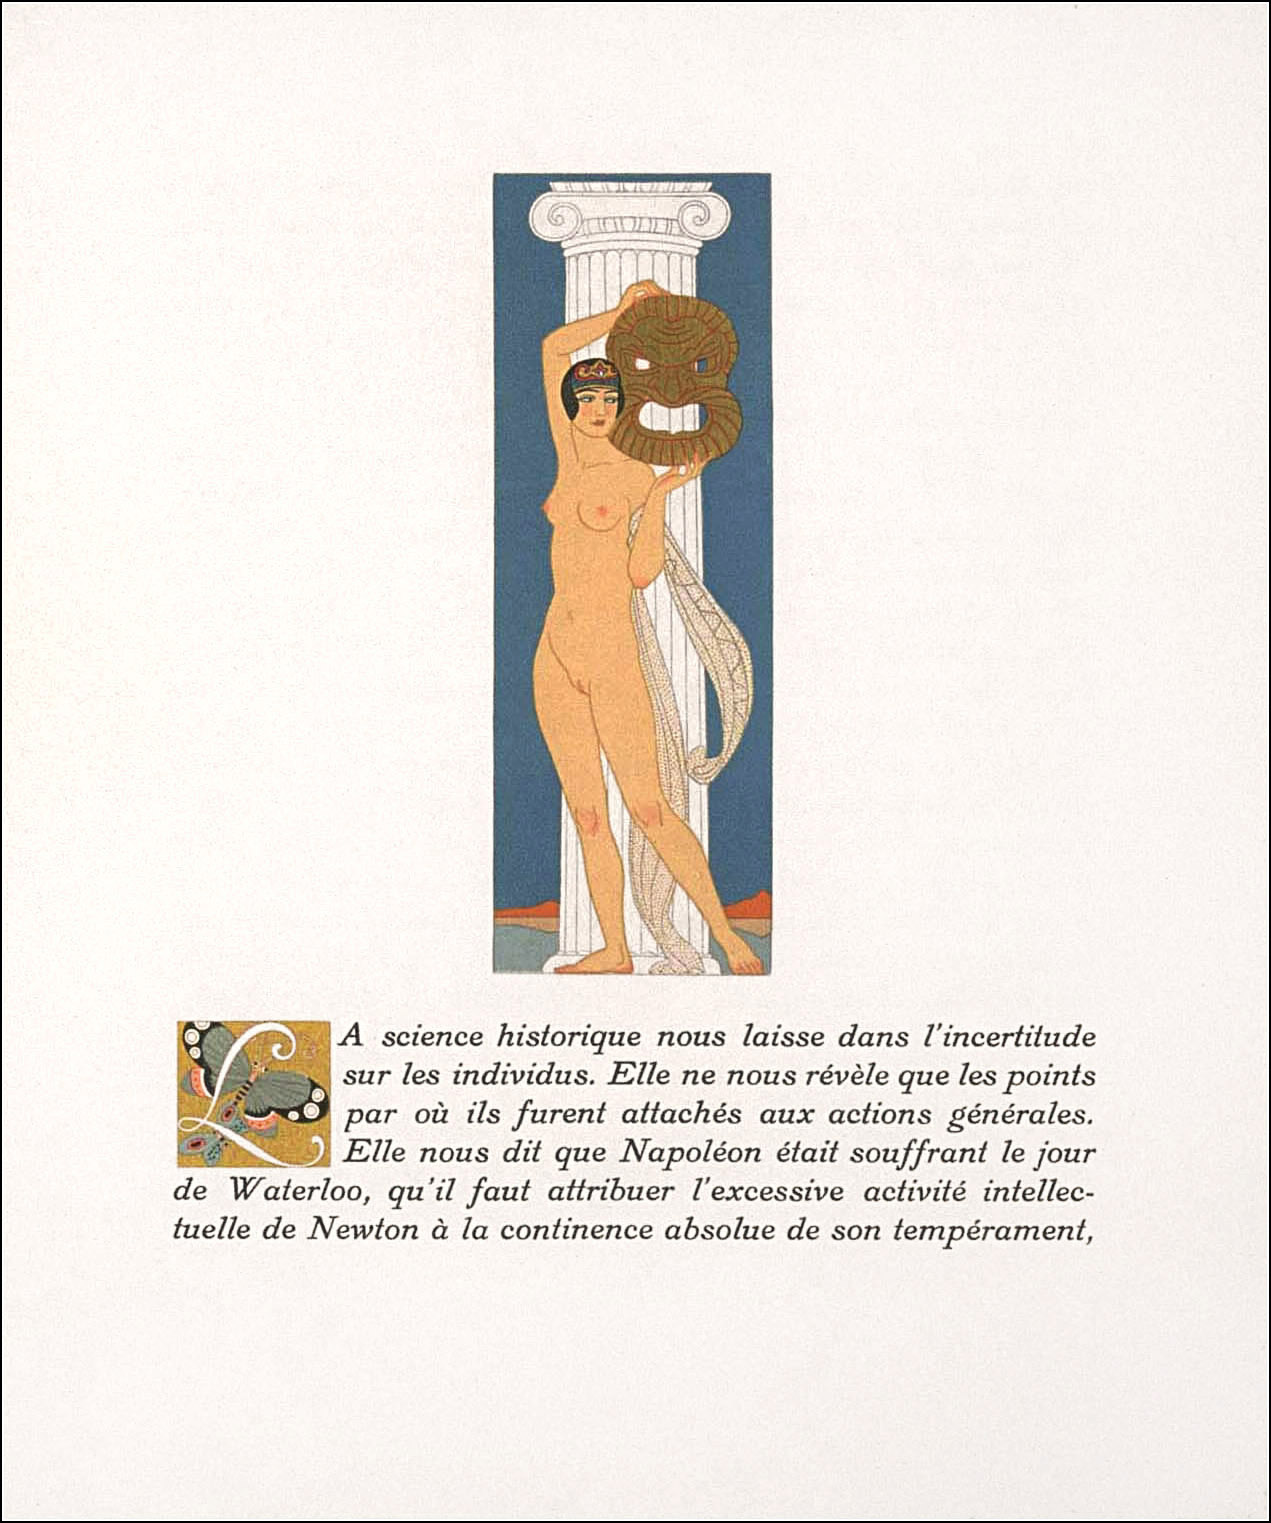 George Barbier, Vies imaginaires